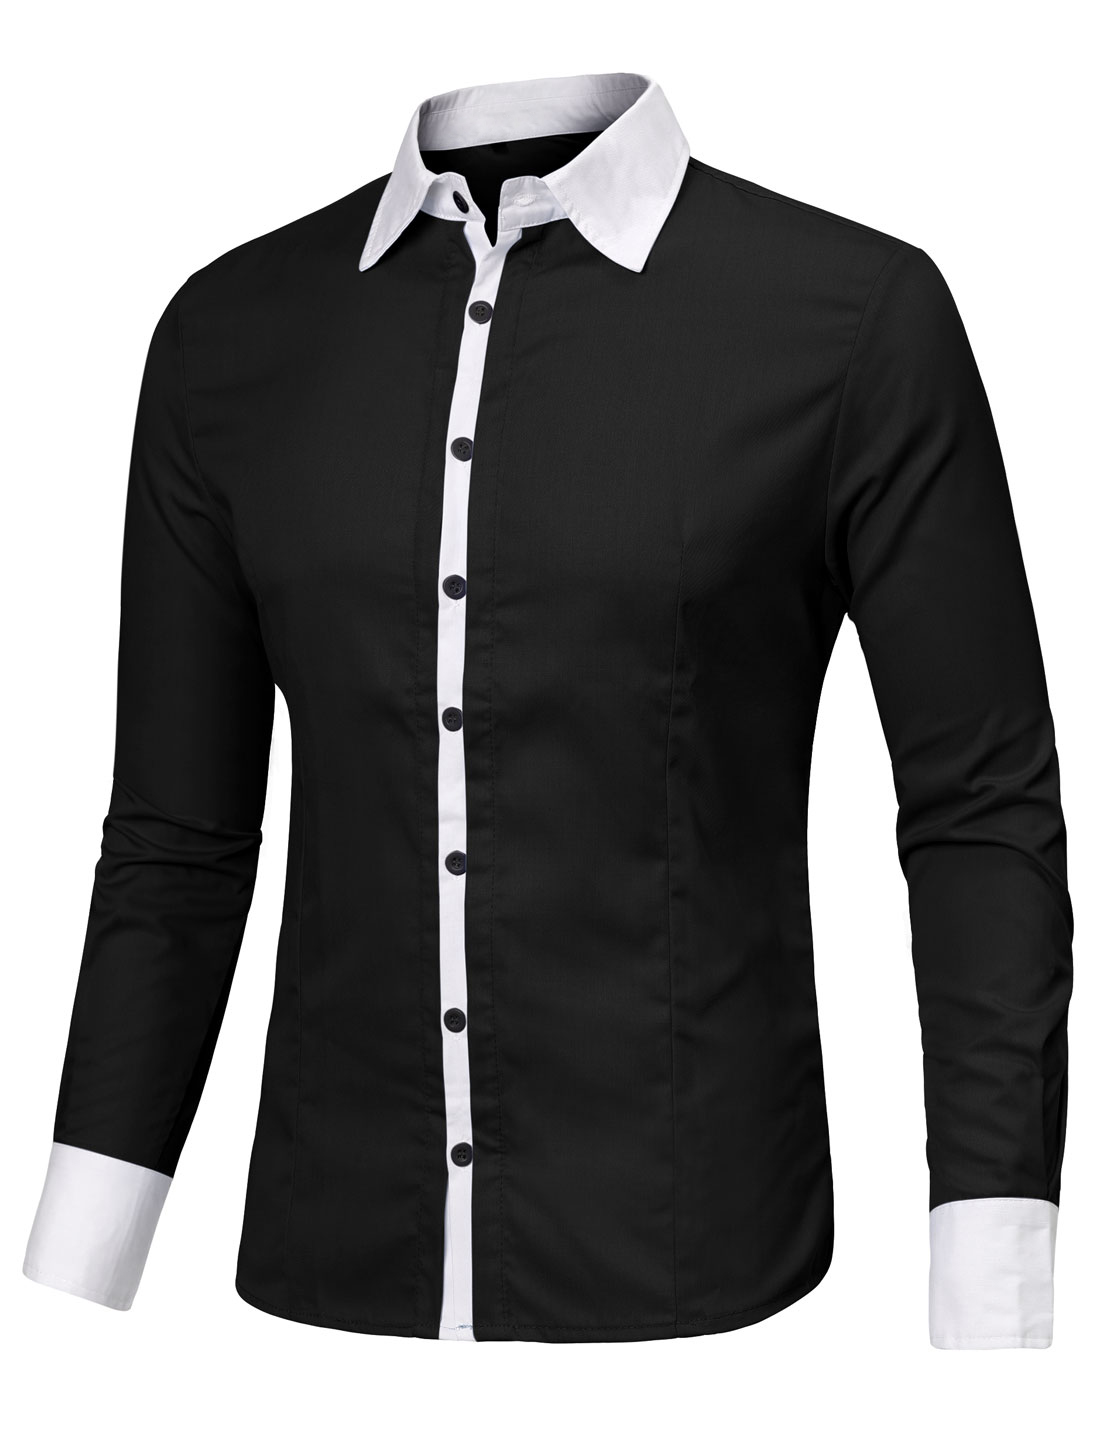 Men Long-Sleeved Round Hem Buttons Cuffs Slim Fit Shirt Black S